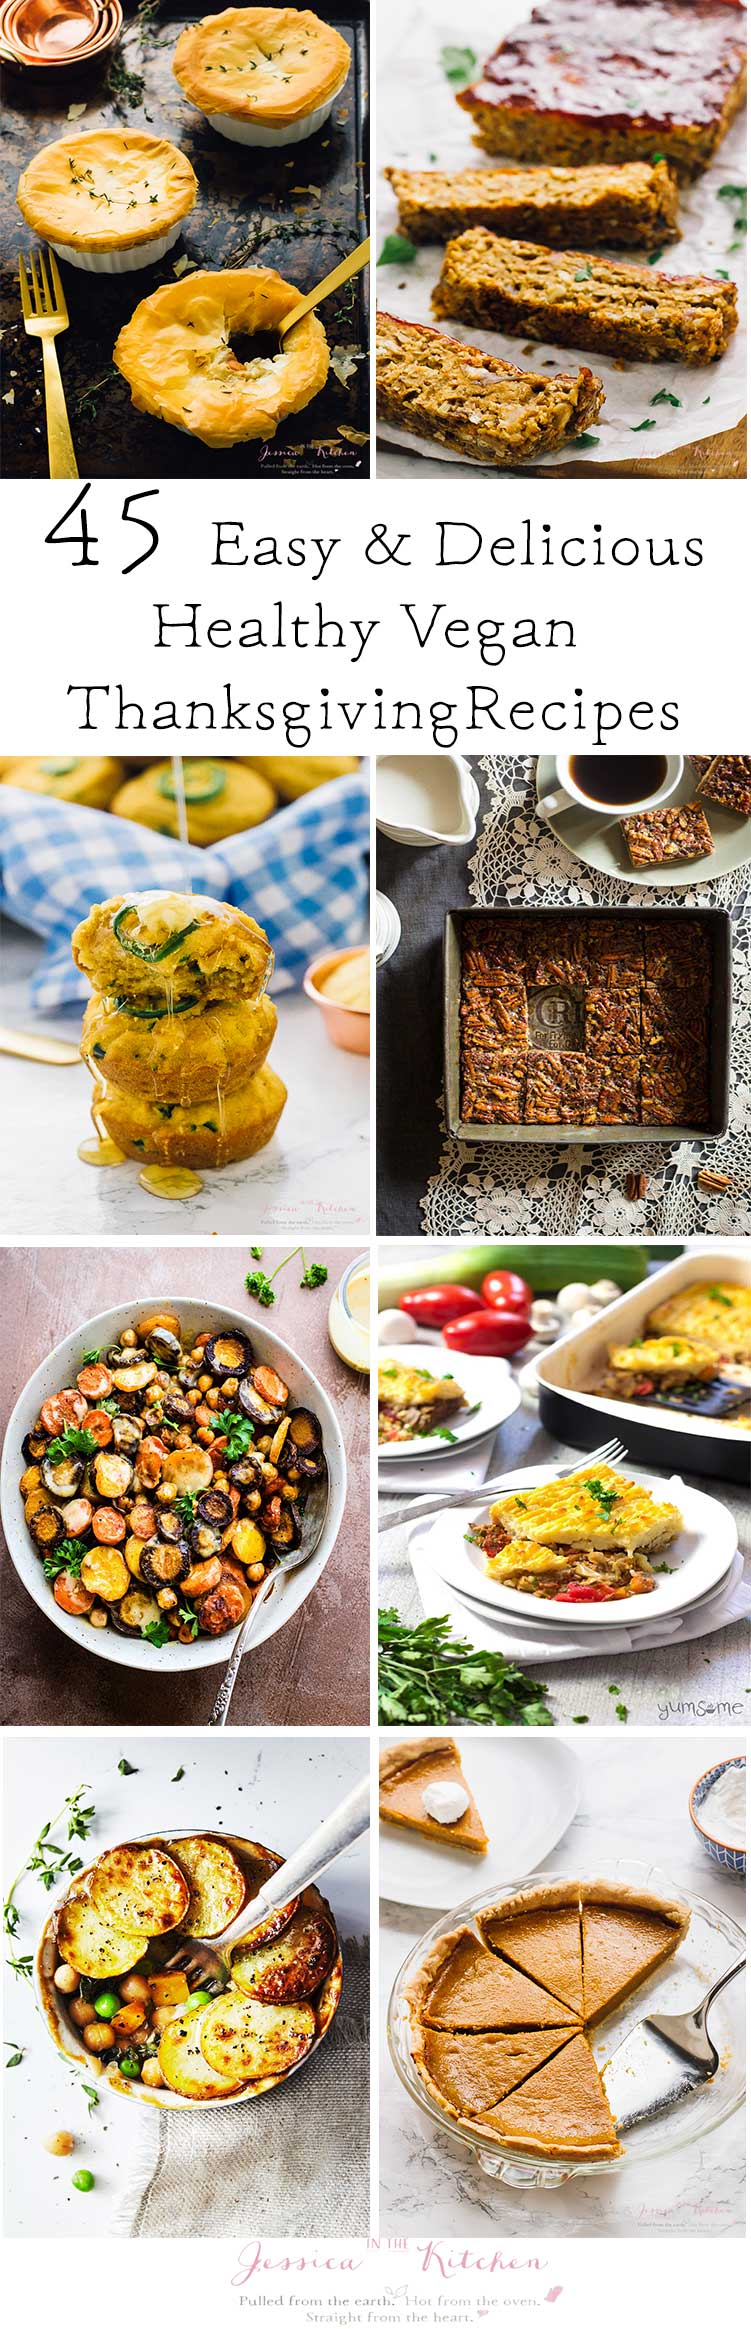 A collage of healthy vegan dishes with text.